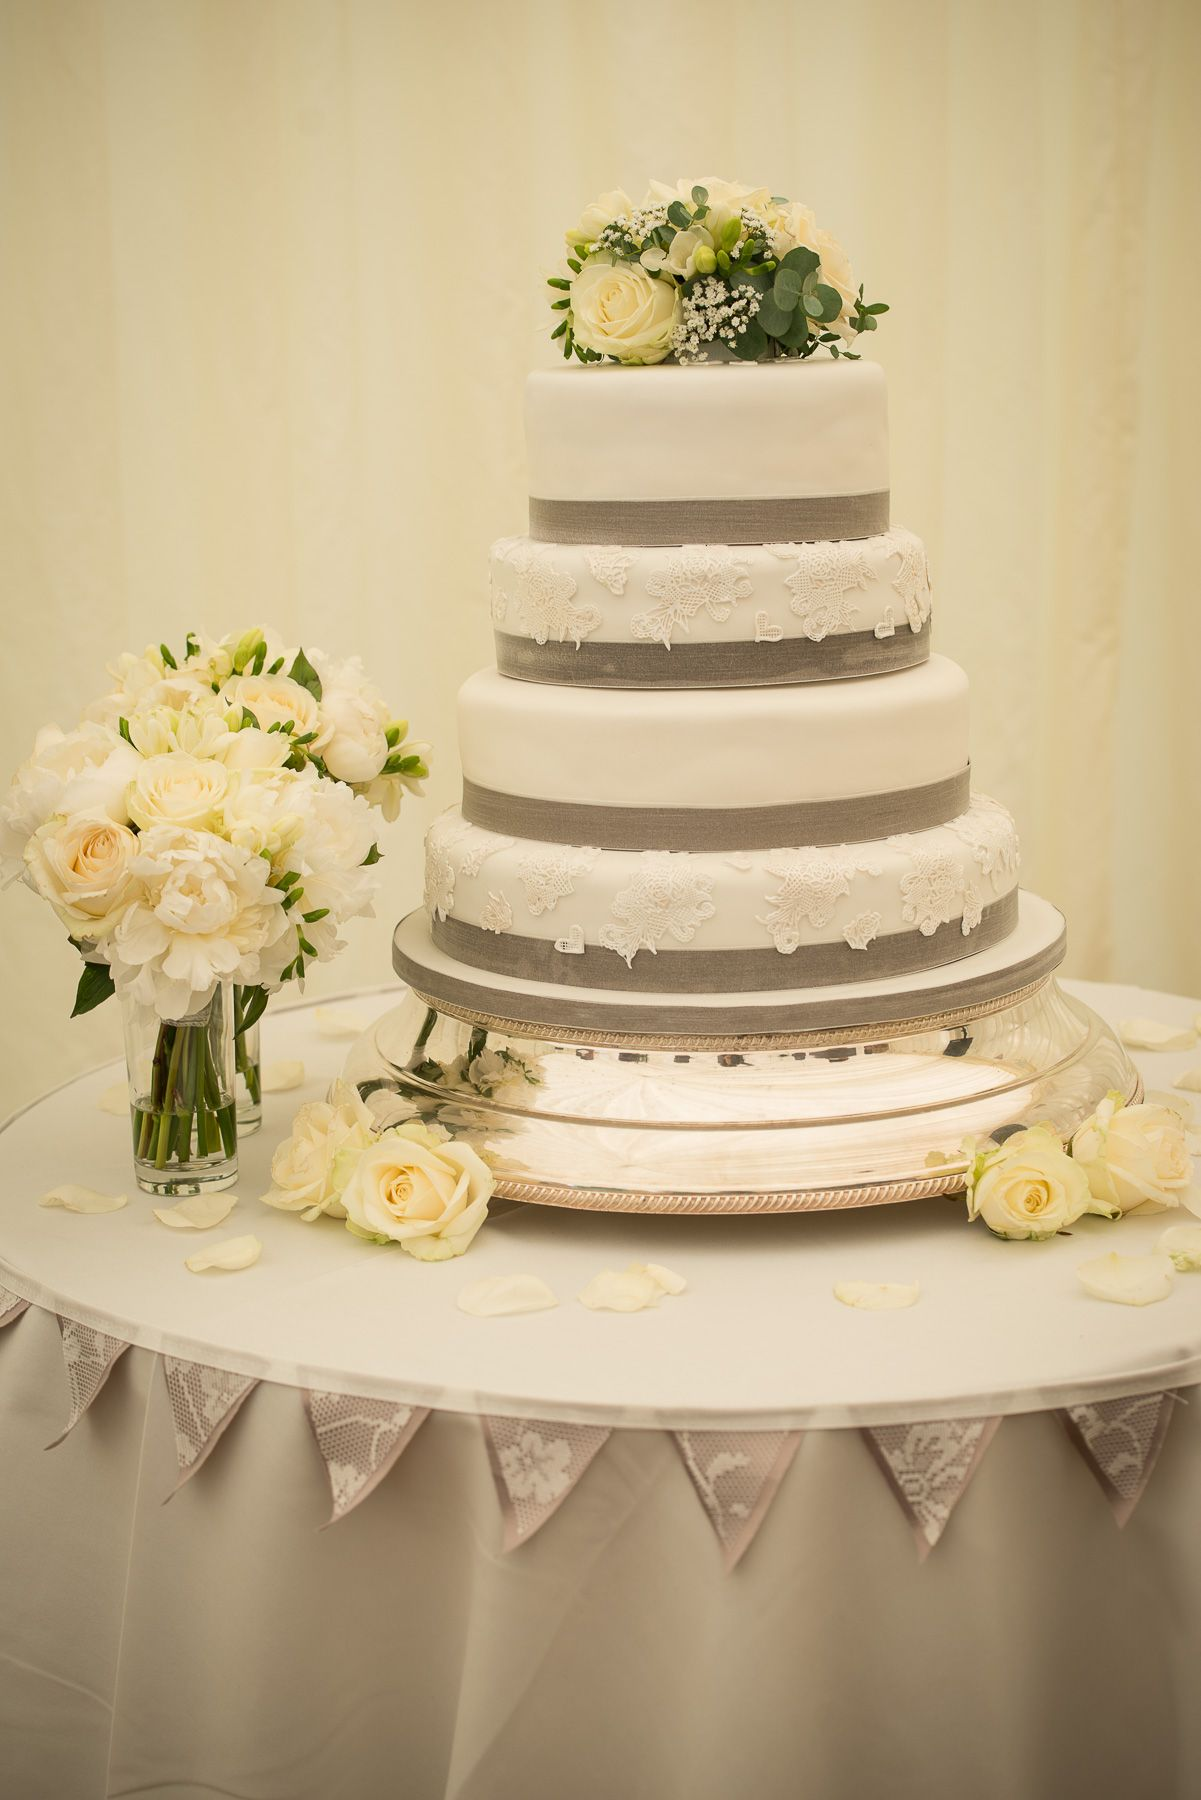 The perfect cake for a silver themed wedding!